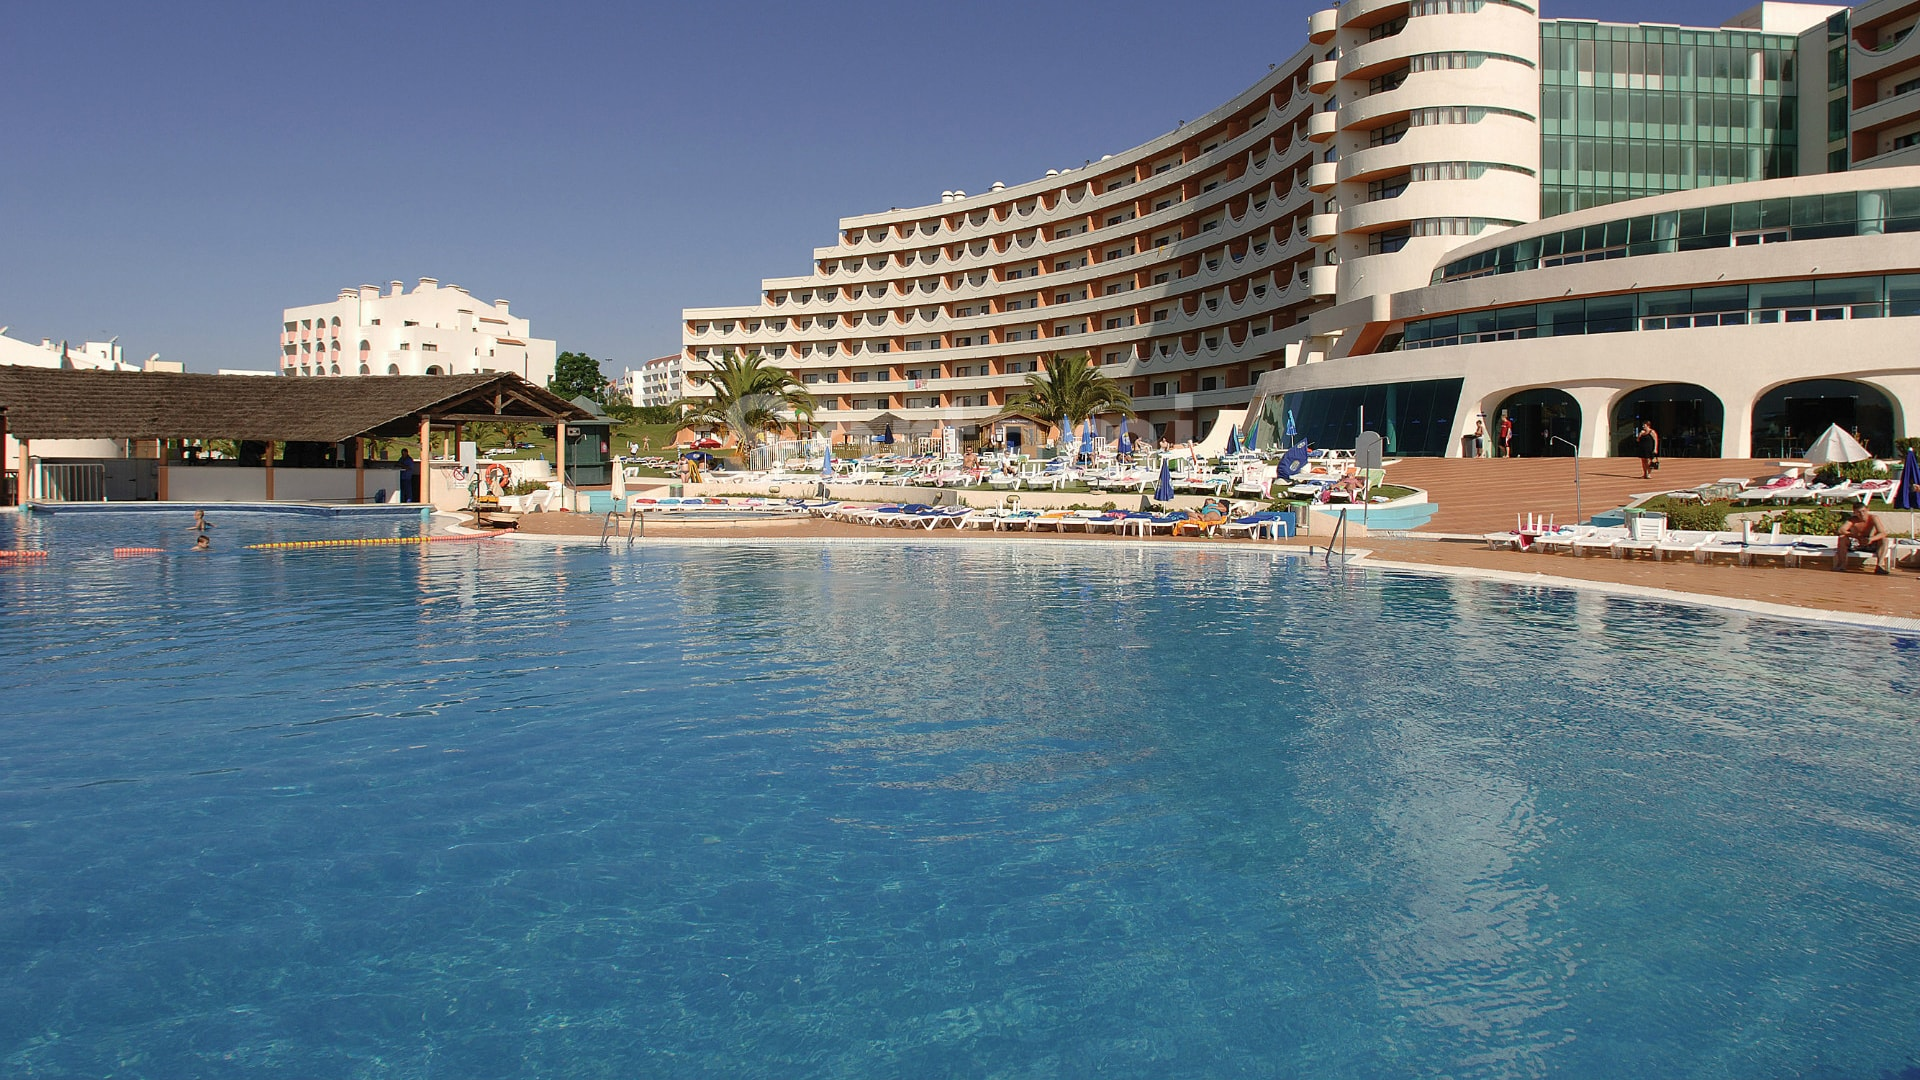 Transfers from / to Hotel Paraiso de Albufeira